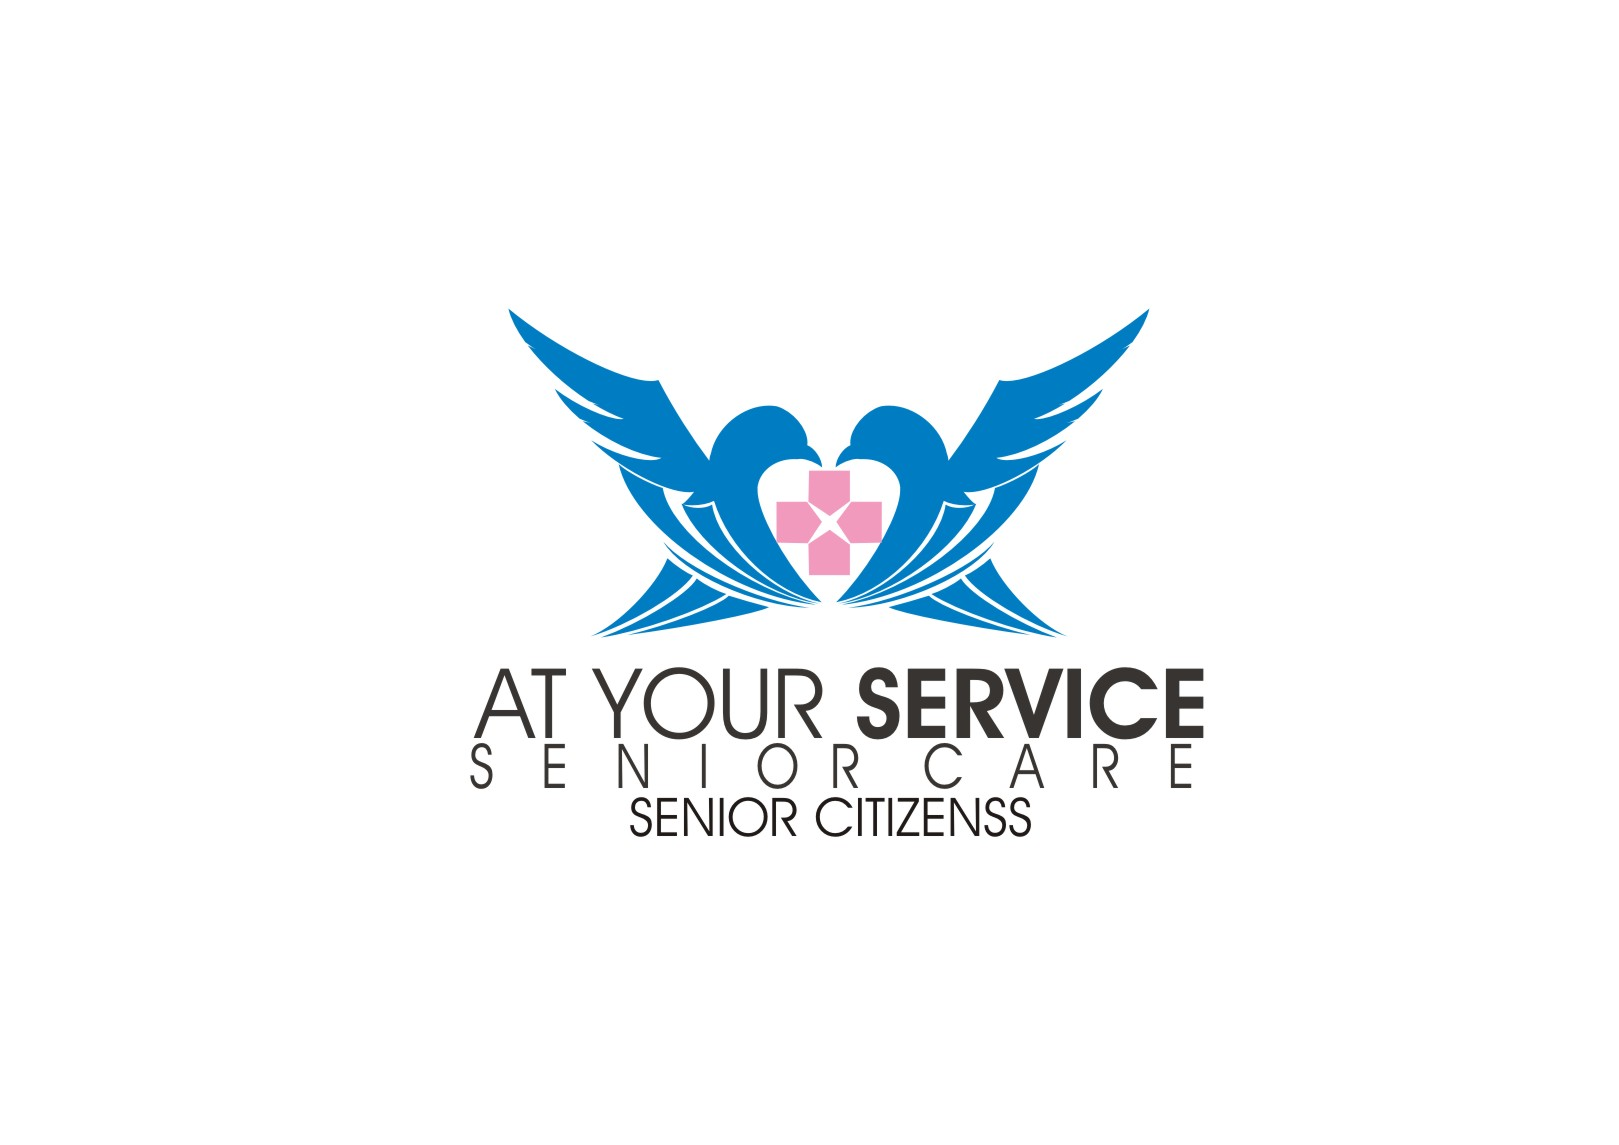 Logo Design by yanxsant - Entry No. 11 in the Logo Design Contest Care To Go Services.